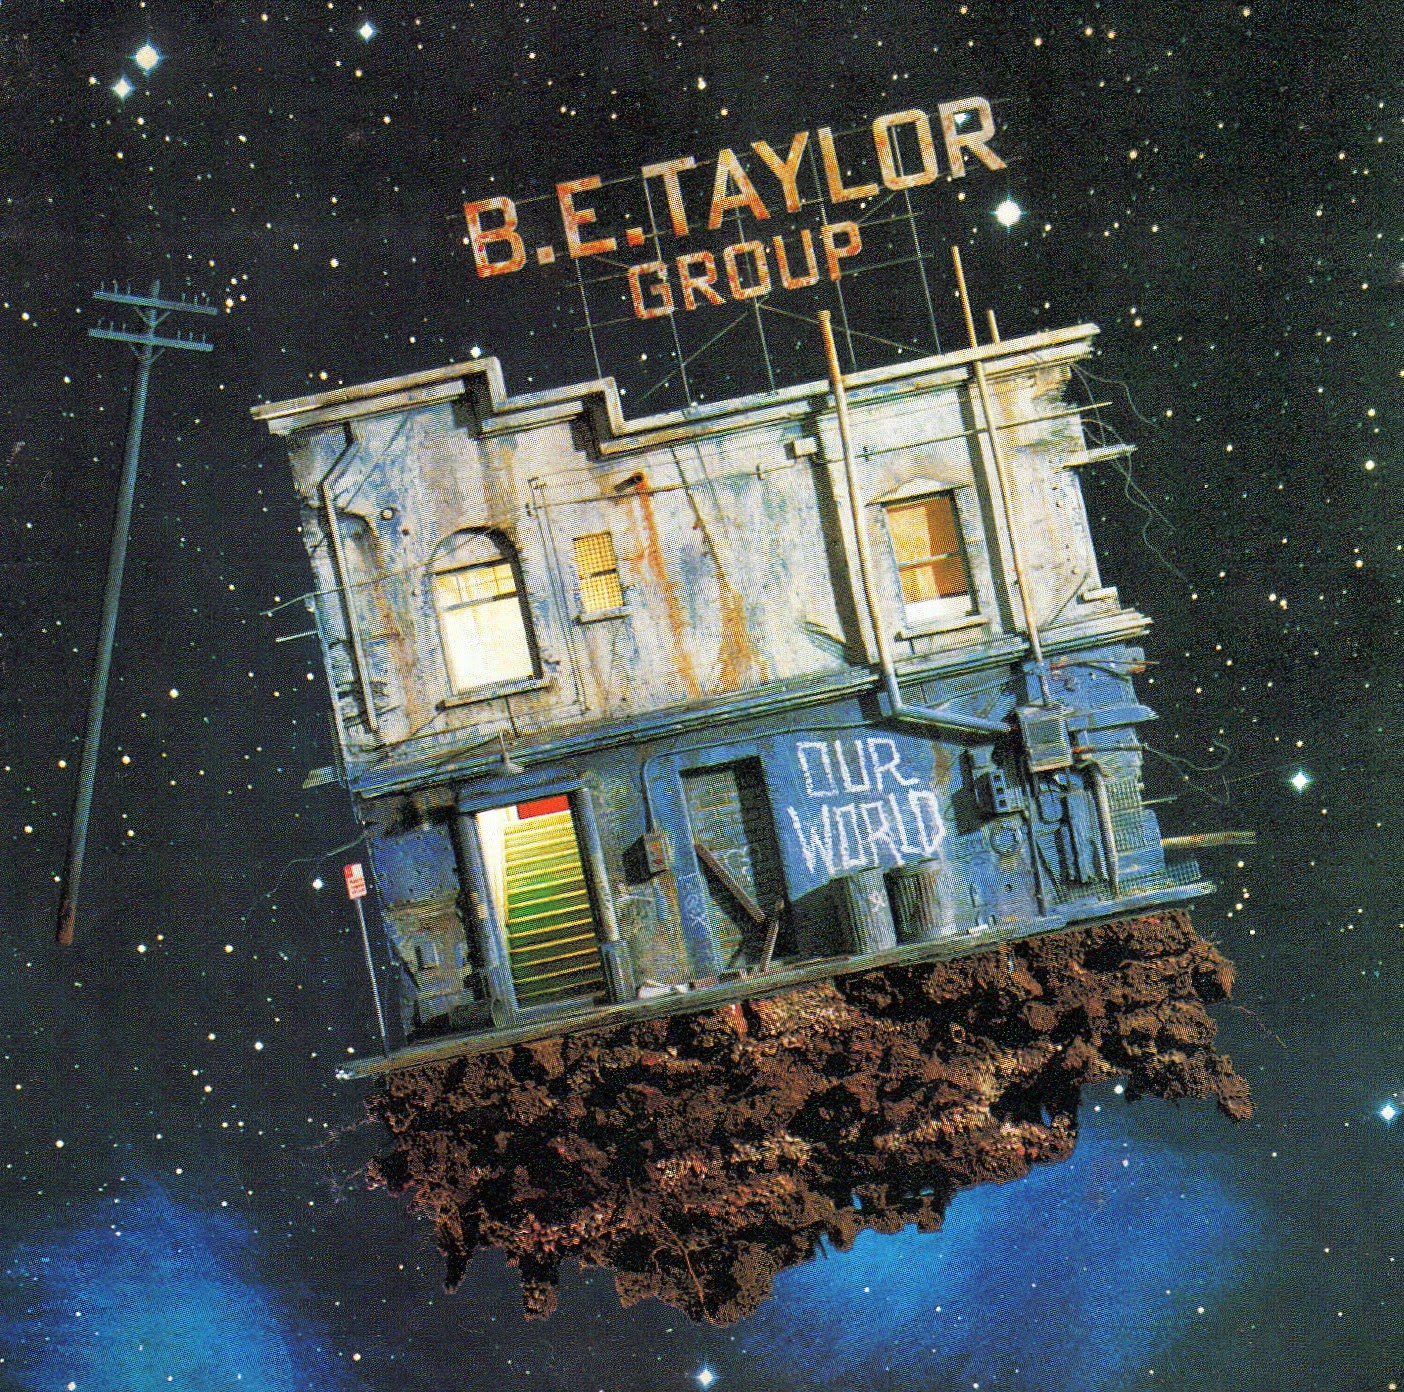 BE Taylor group Our world 1986 aor melodic rock